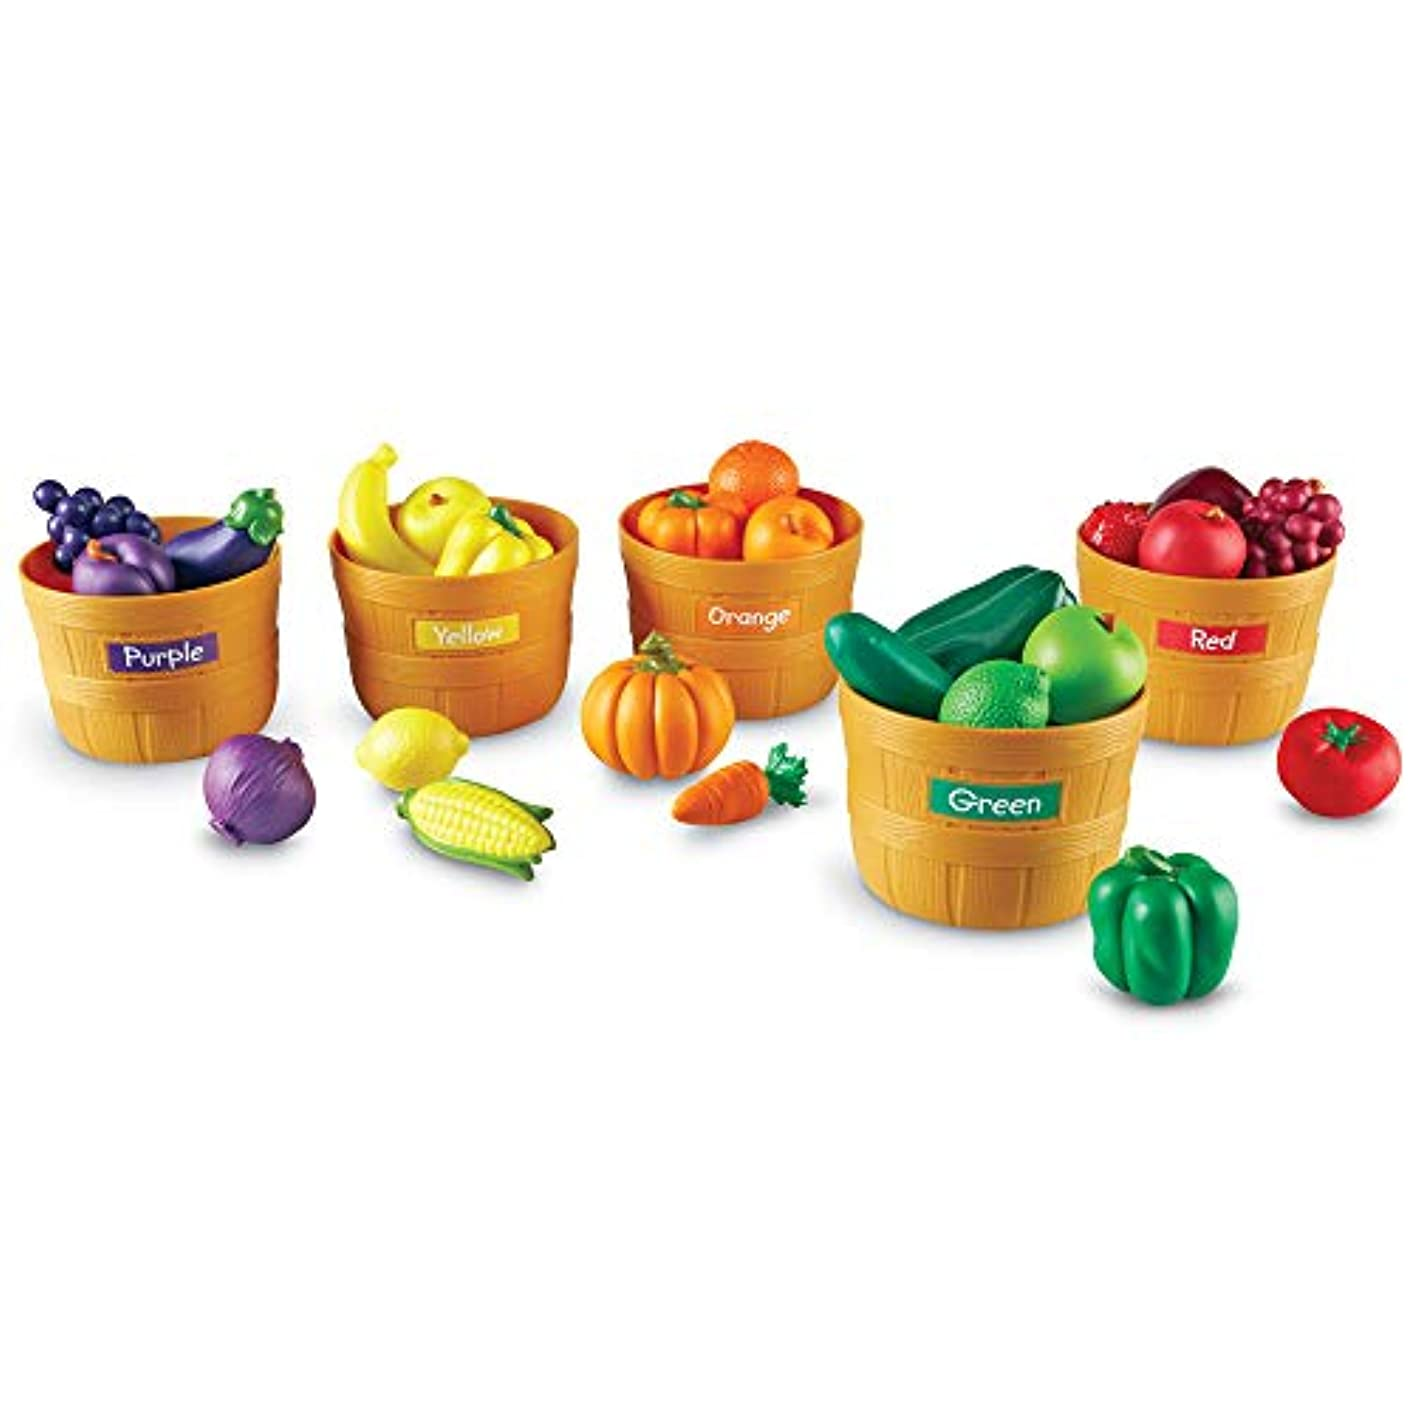 Learning Resources Farmer's Market Color Sorting Set, Play Food, Fruits and Vegetables Toy, 25 Piece Set, Ages 3+